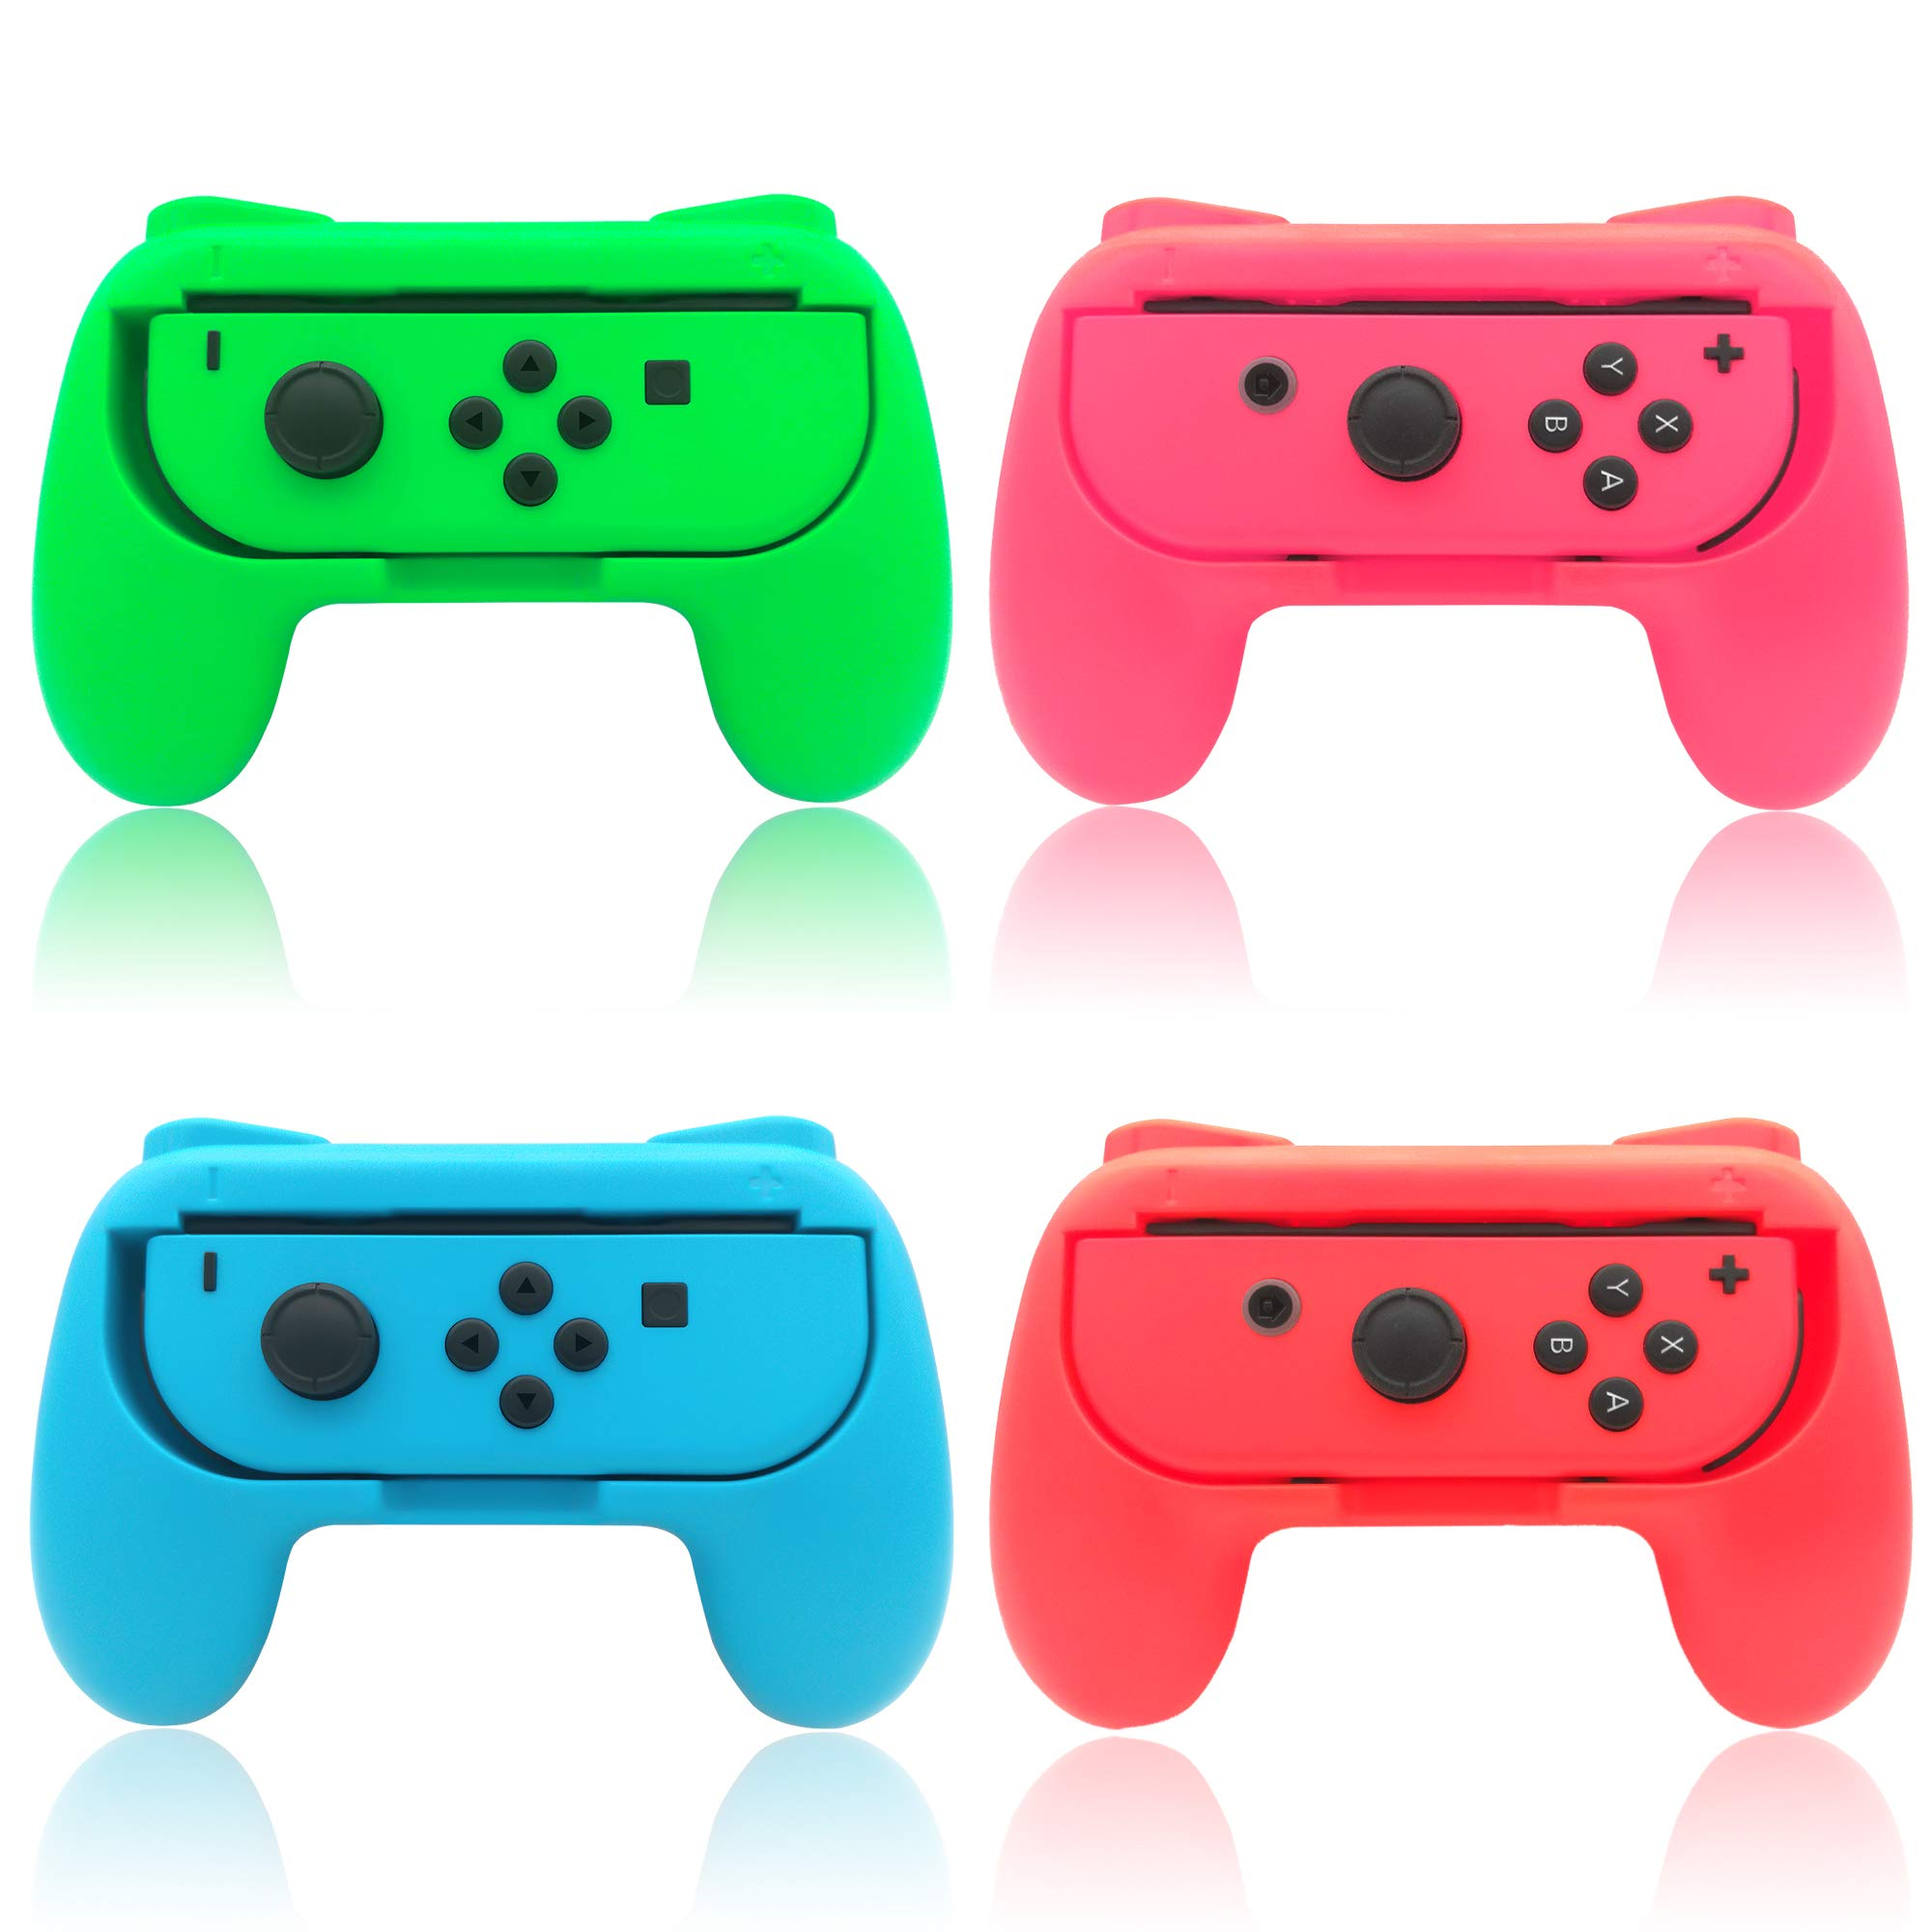 Grips for Nintendo Switch Joy-Con,FYOUNG Hand Grips Controllers for Nintendo Switch Joy Con (4 Pack)(Red-Blue-Green-Pink) by FYOUNG